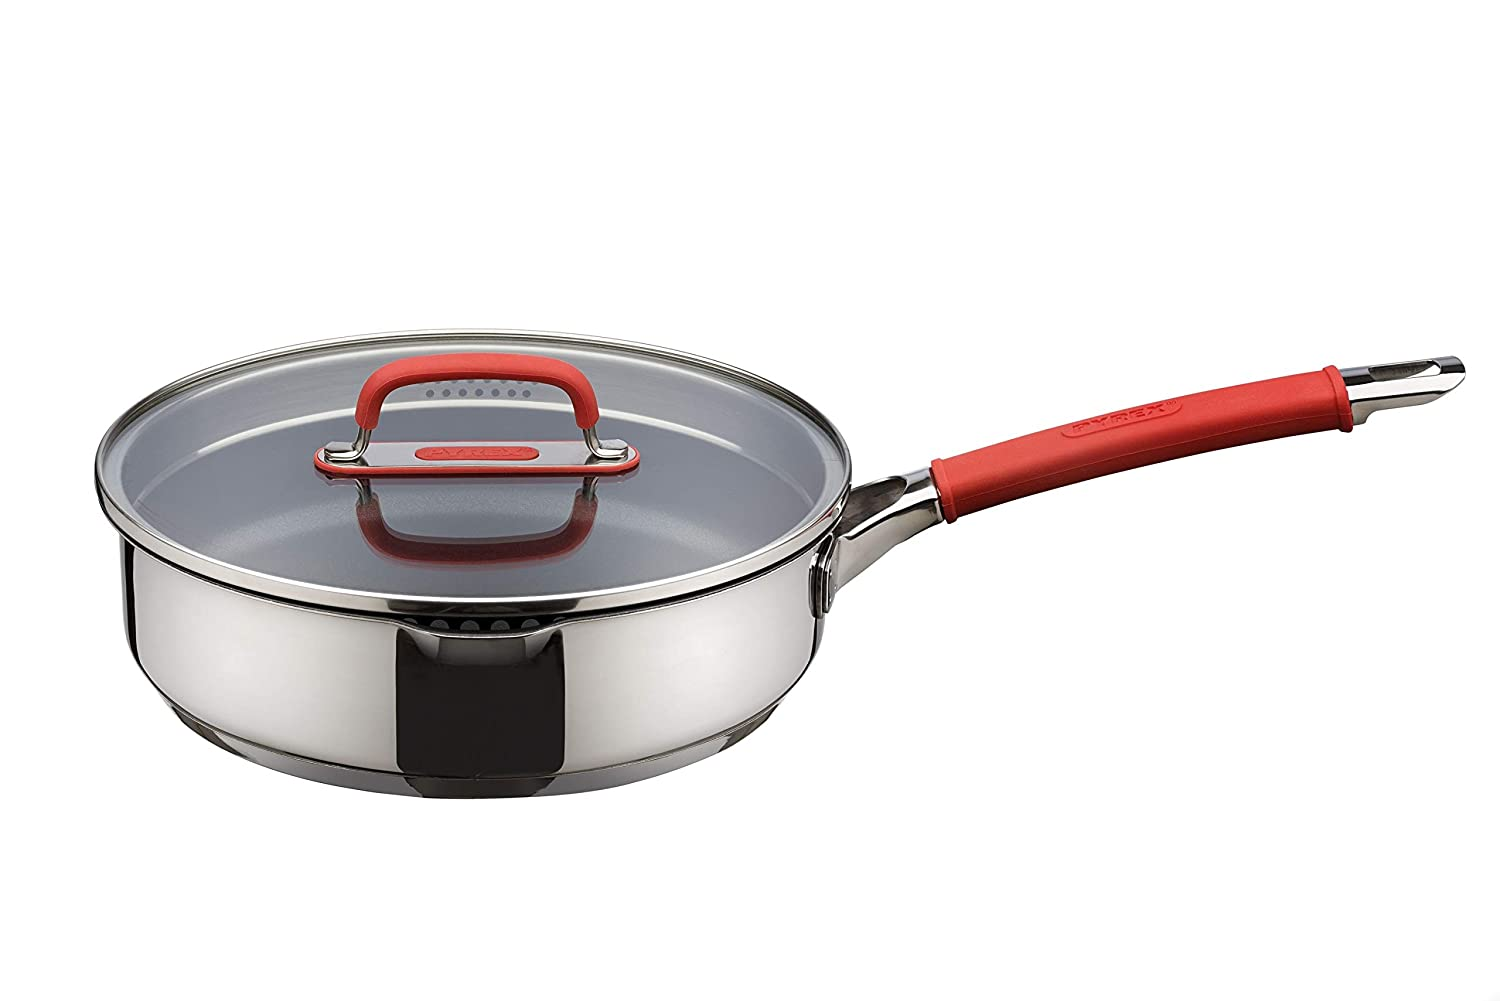 Pyrex Passion Cookware 24cm Non Stick Sauté Pan with Lid - Stainless Steel with RedHandles